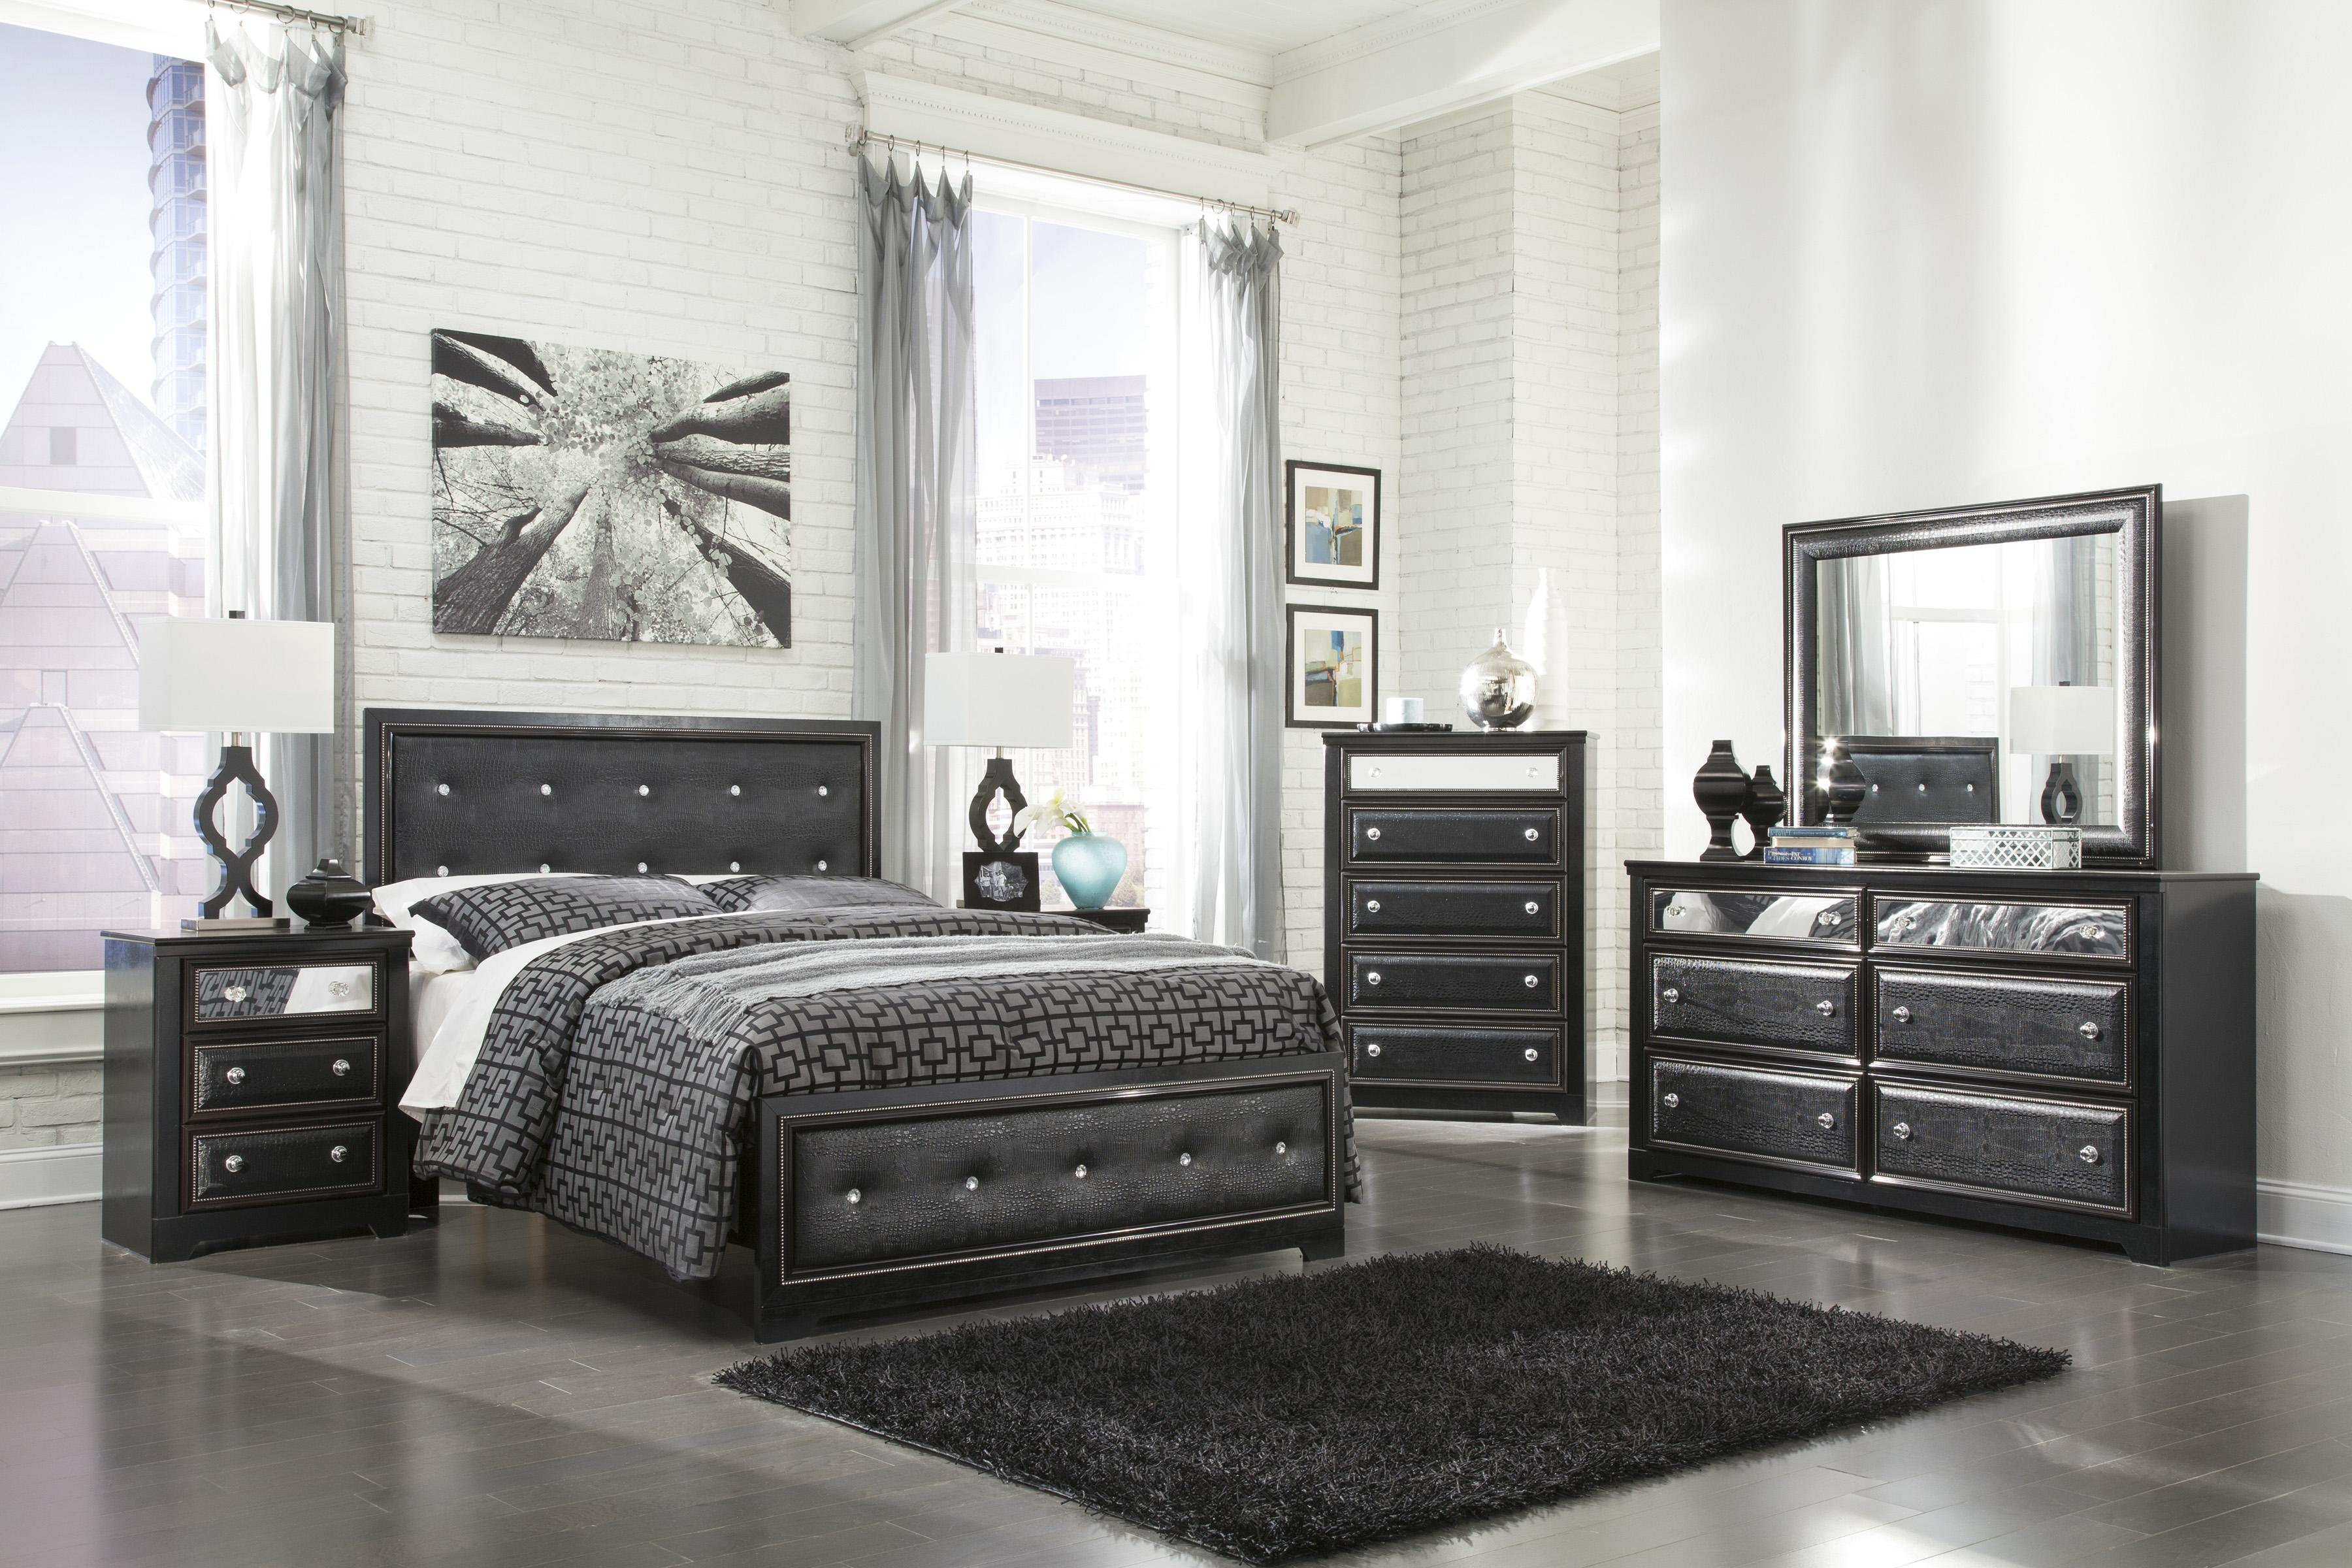 Signature Design by Ashley Alamadyre Queen Bedroom Group - Item Number: B364 Q Bedroom Group 1